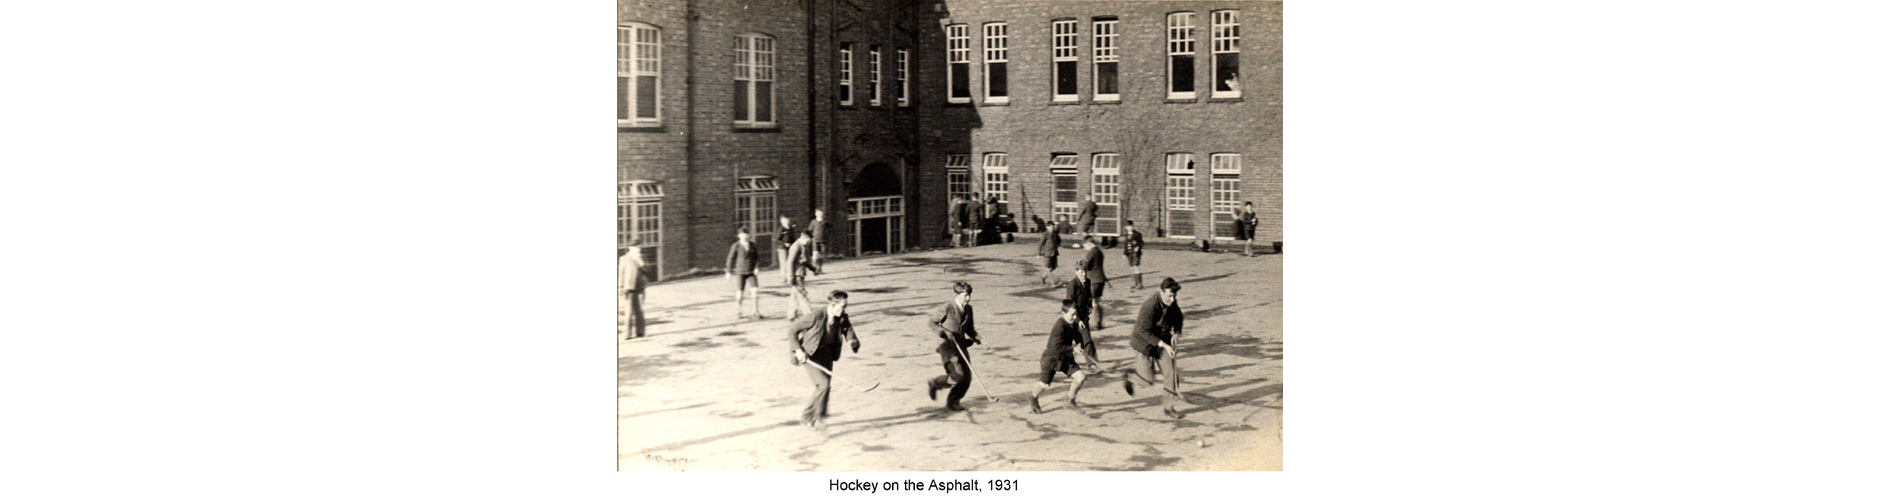 Hockey on the Asphalt, 1931